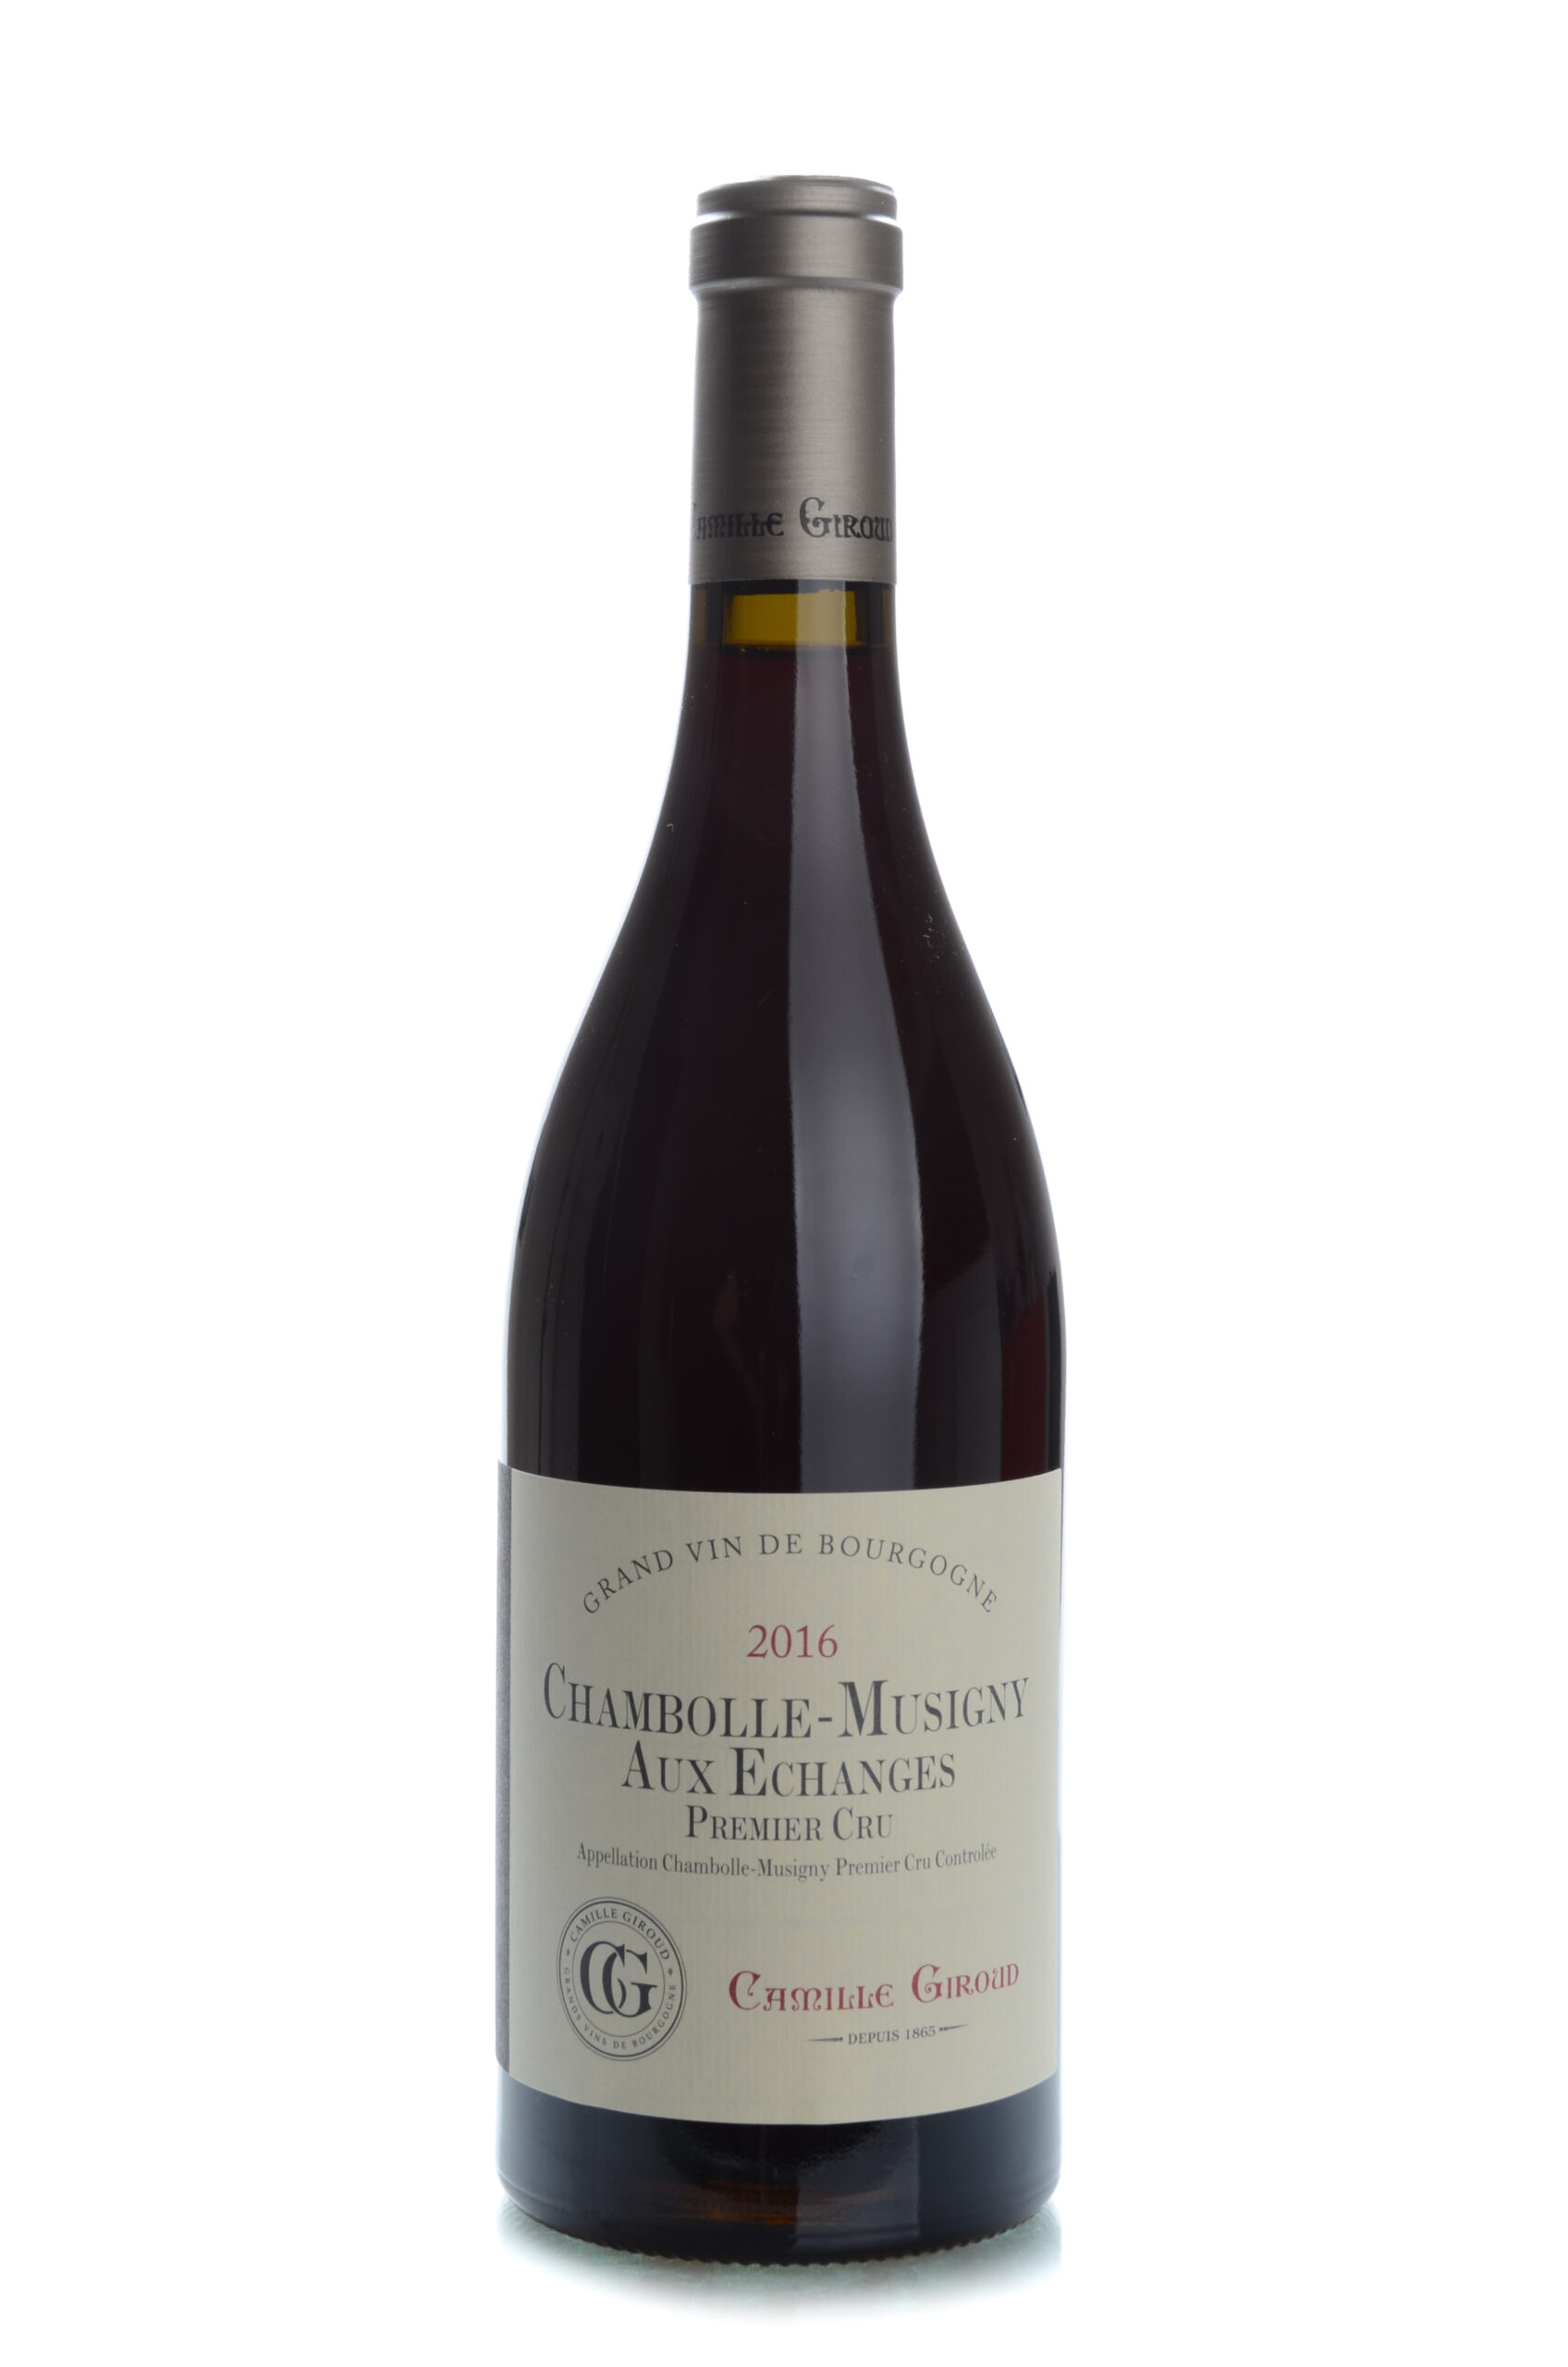 Camille Giroud Chambolle-Musigny Aux Echanges 1 Cru